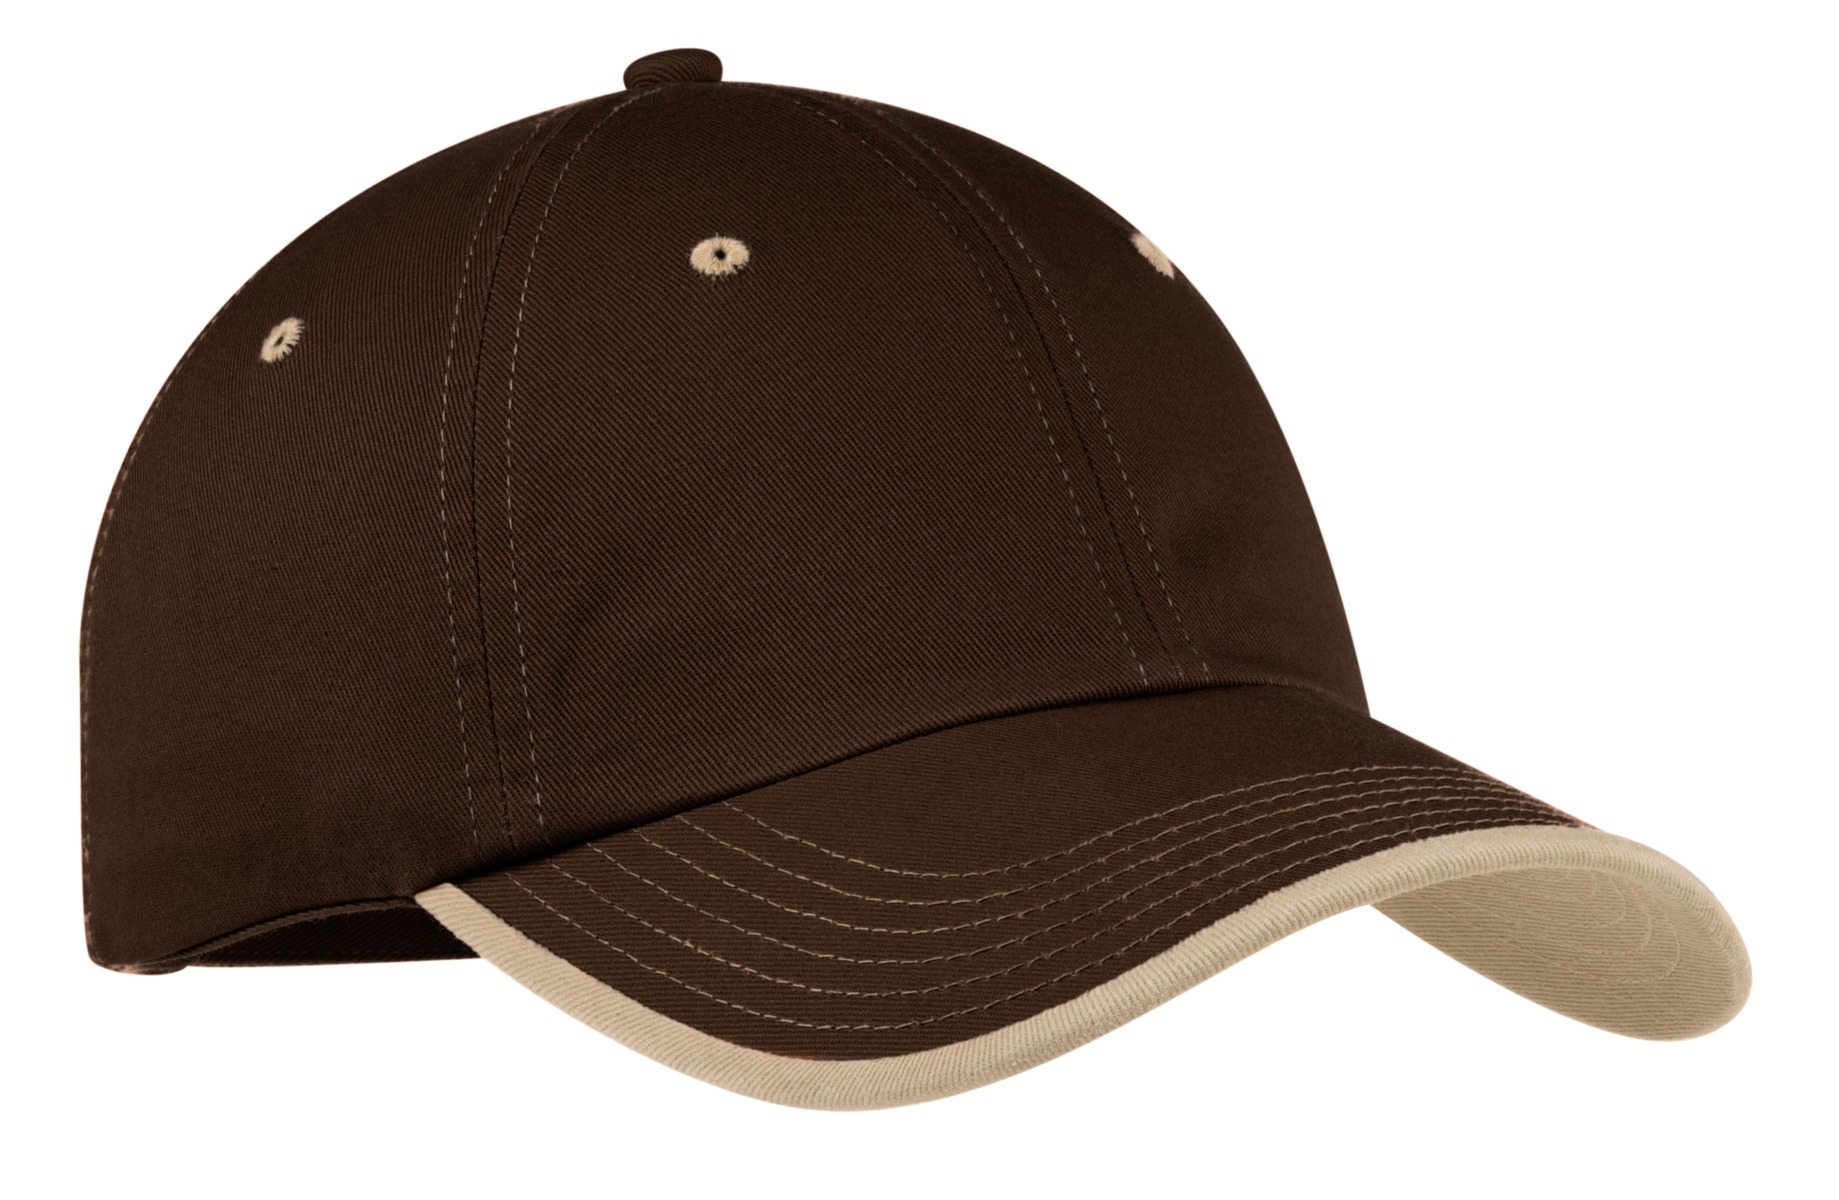 Port Authority ®  Vintage Washed Contrast Stitch Cap.  C835 - Brown/ Stone